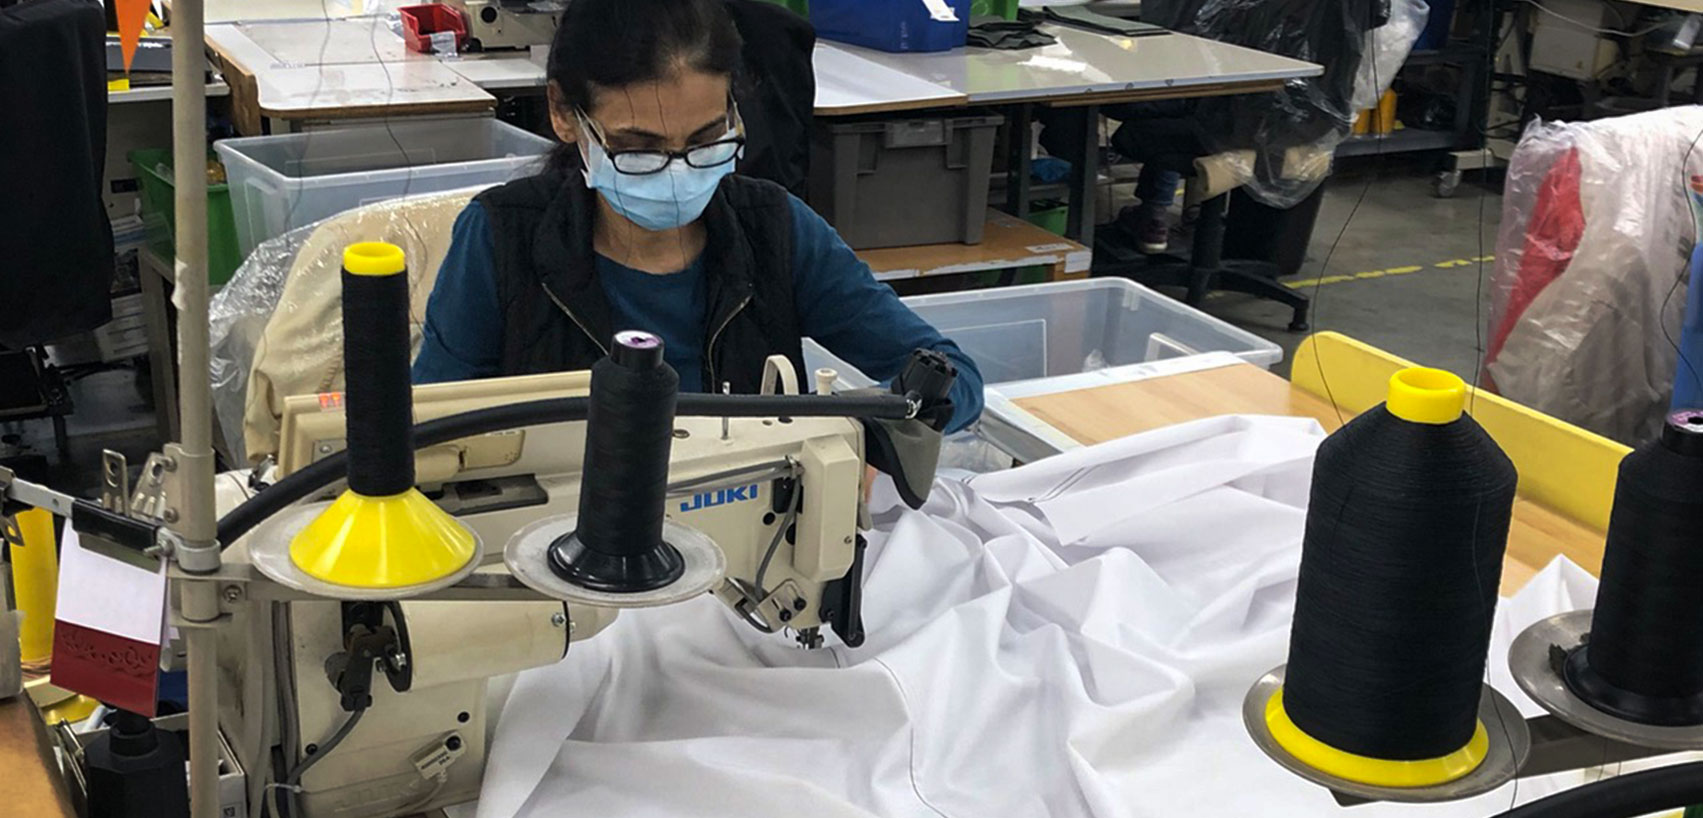 person sewing a medical gown